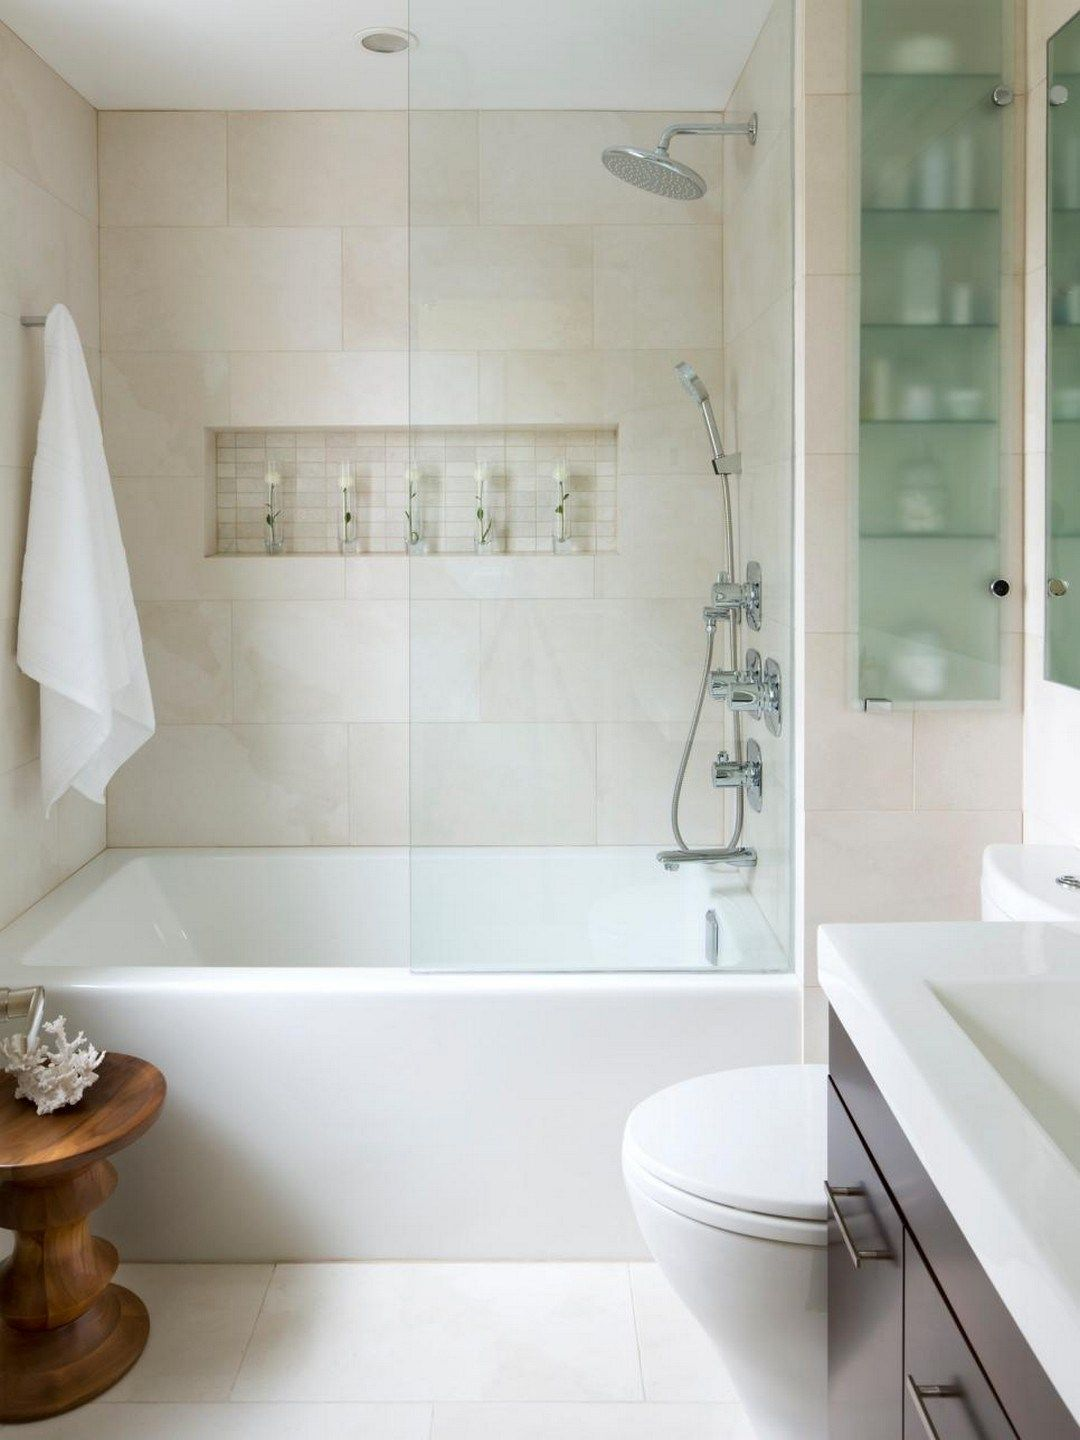 Shape of tub mirrored in the large tiles, half/glass splash guard ...